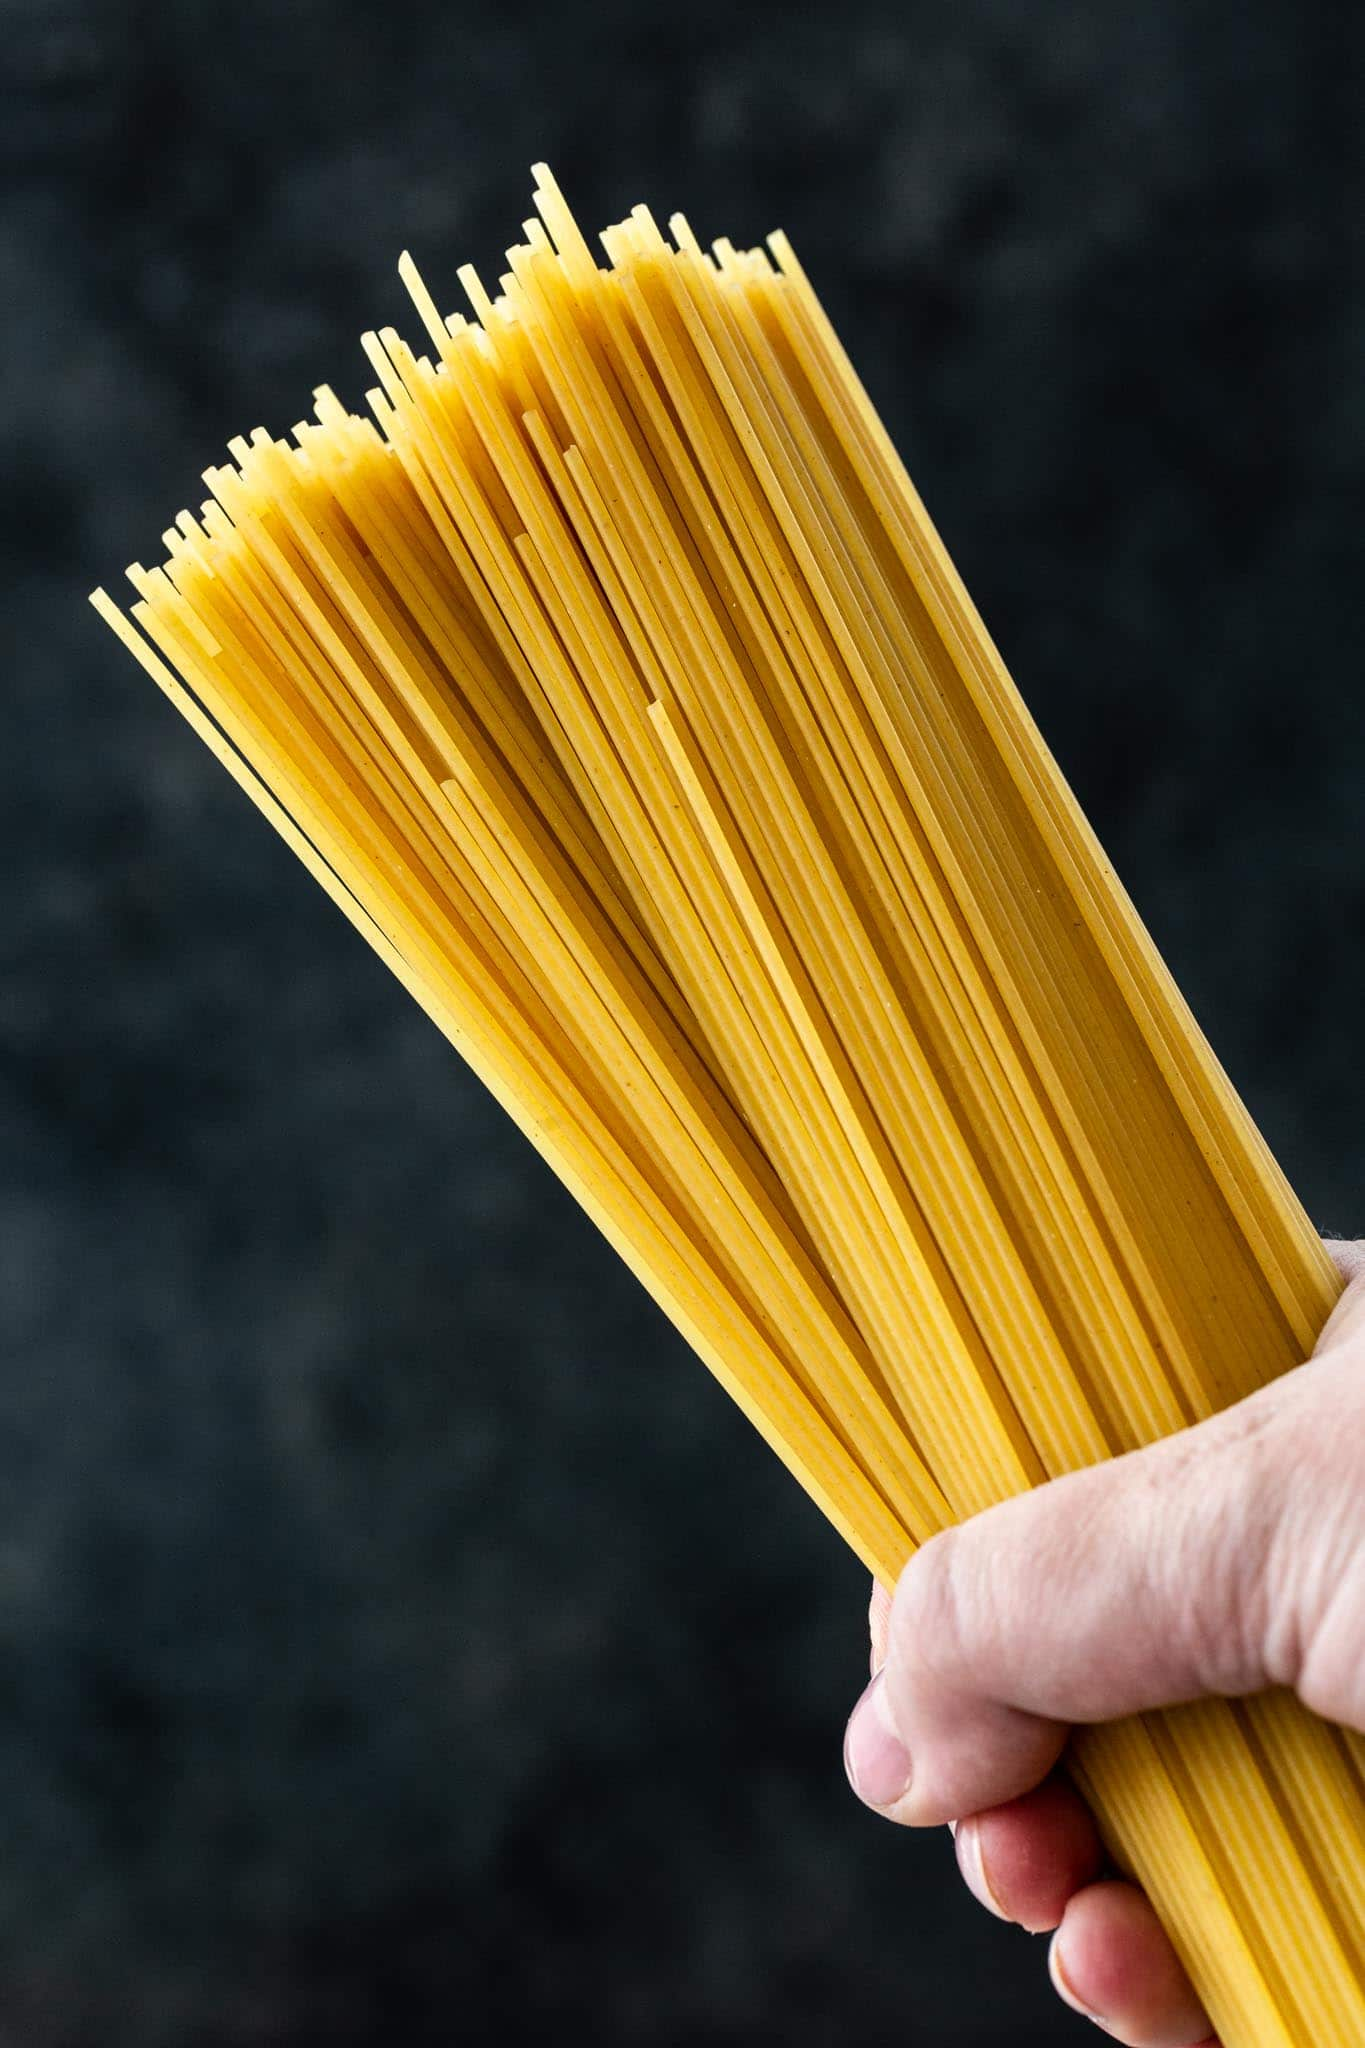 A handful of uncooked spaghetti.